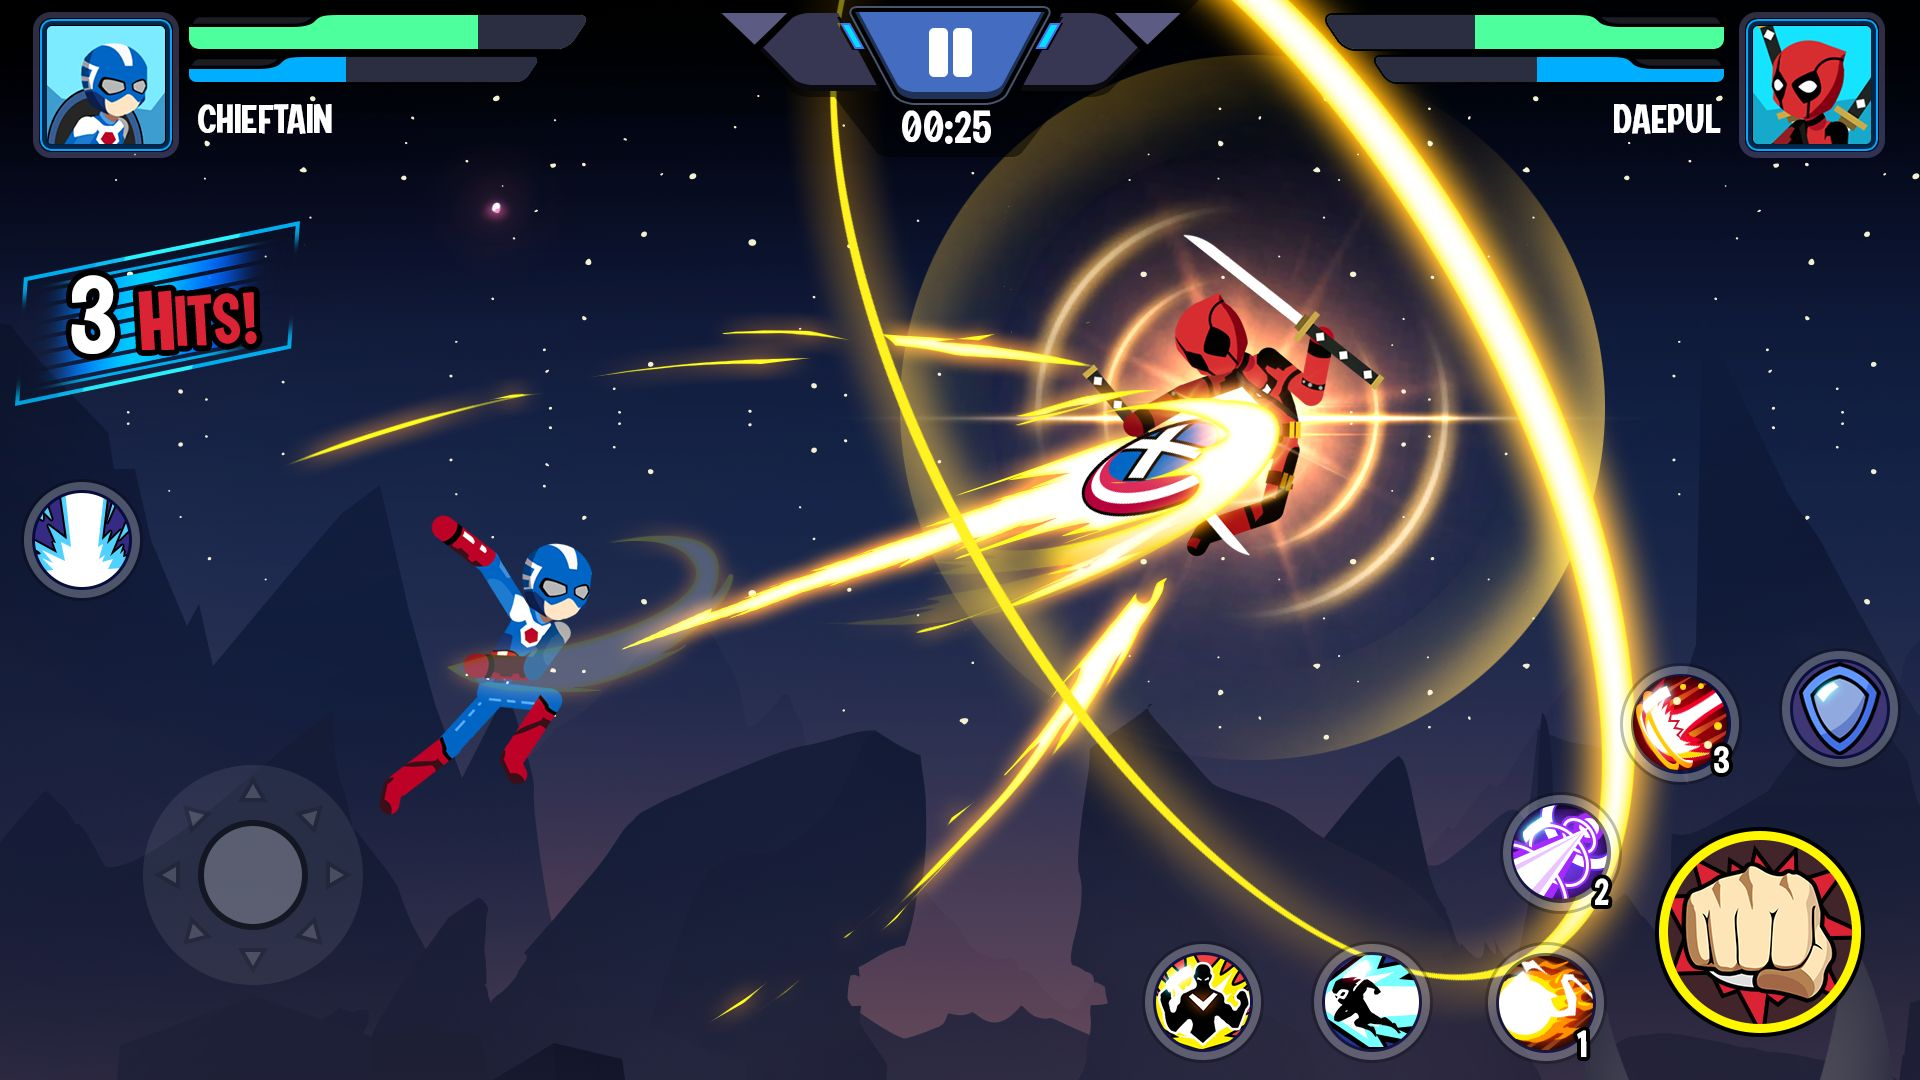 Stickman Superhero - Super Stick Heroes Fight für Android